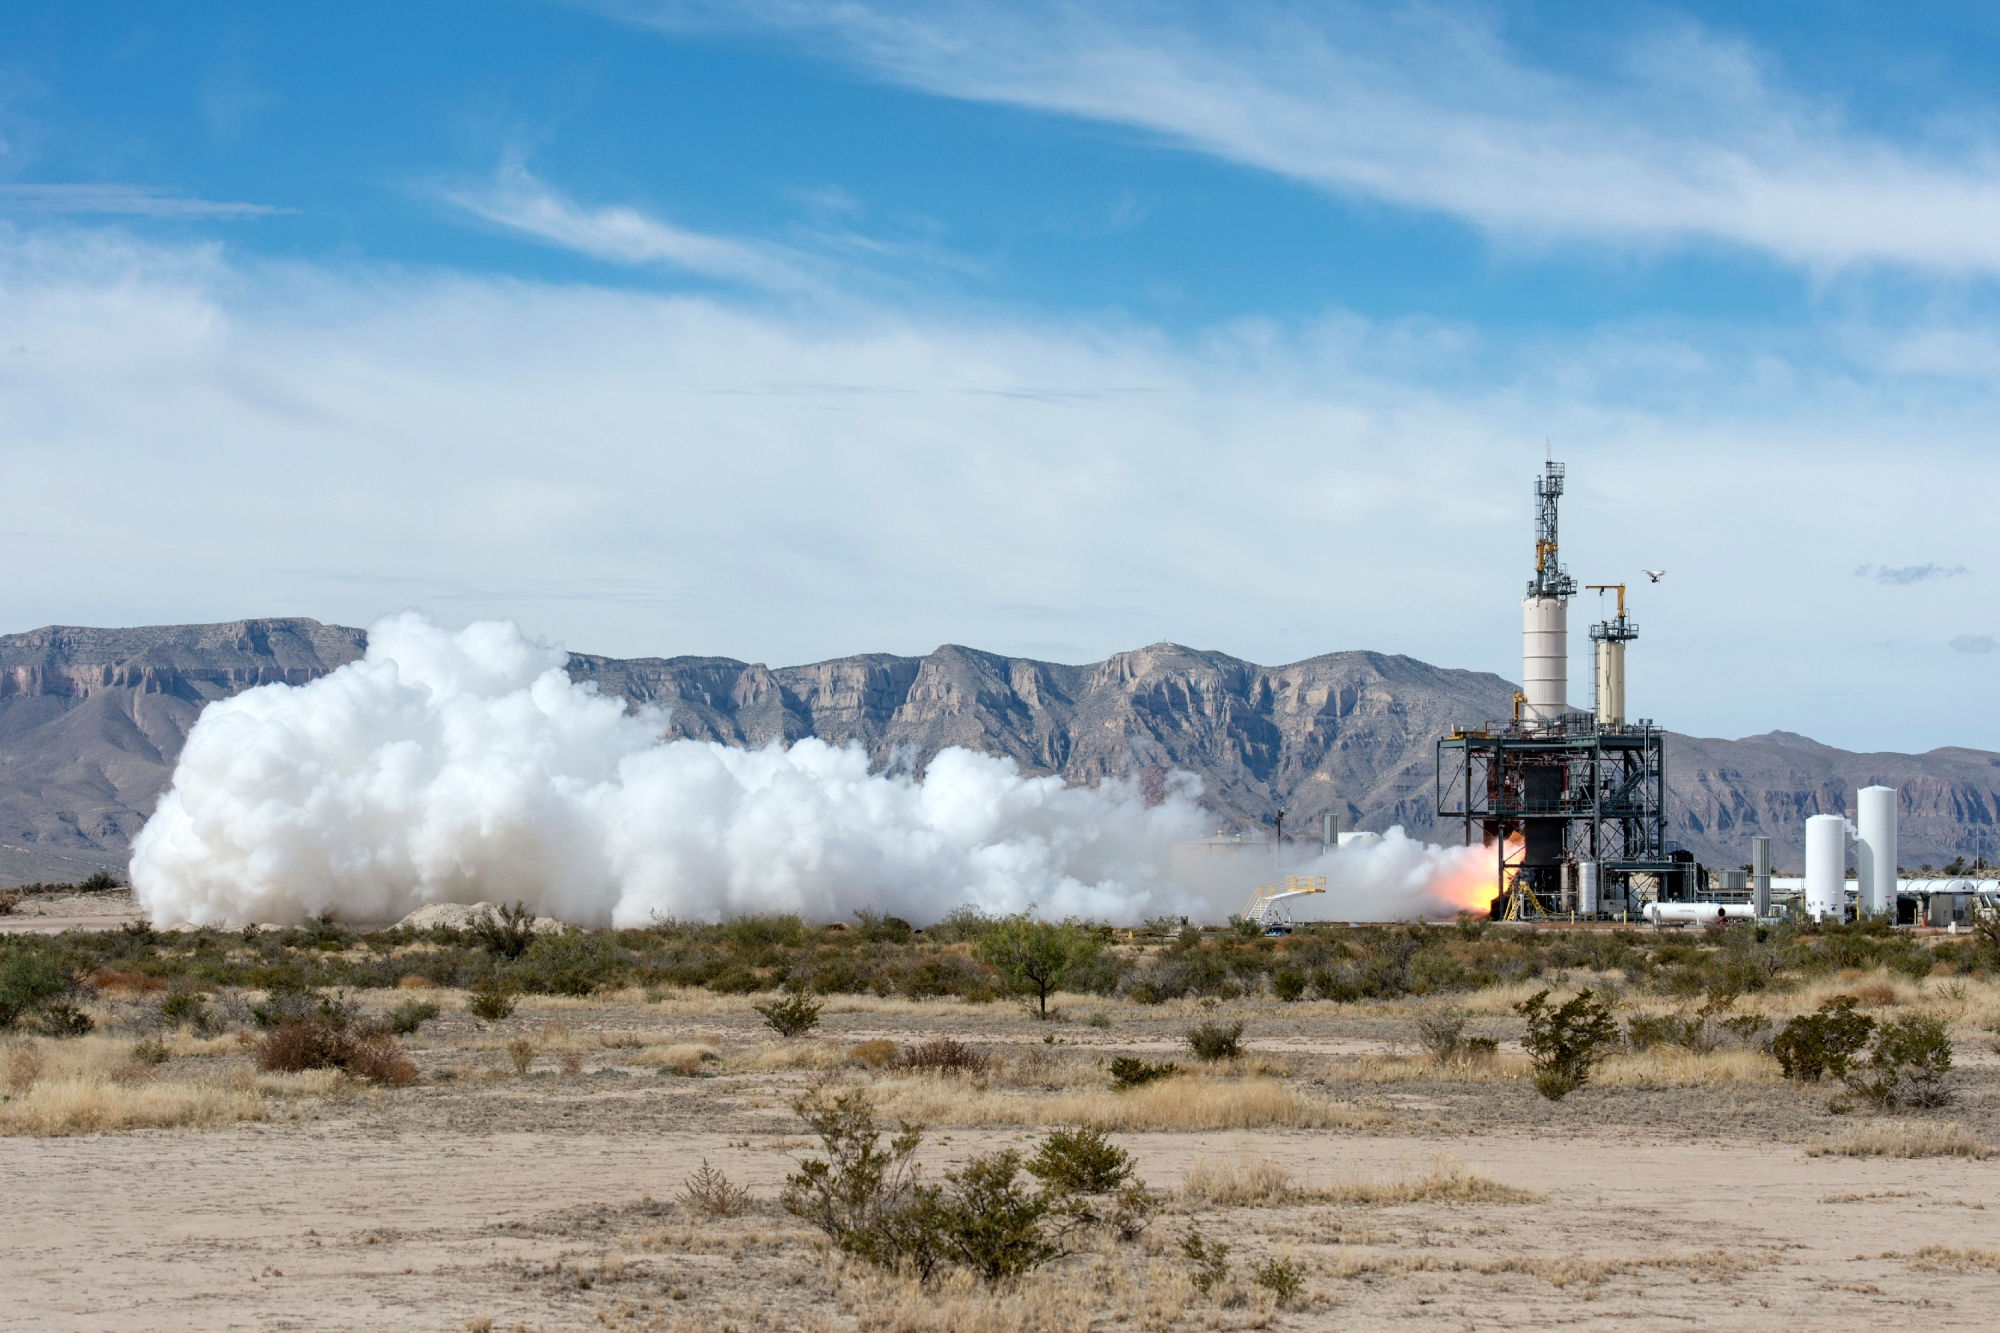 Jeff-Bezos-rocket-company-to-begin-suborbital-test-flights-this-year